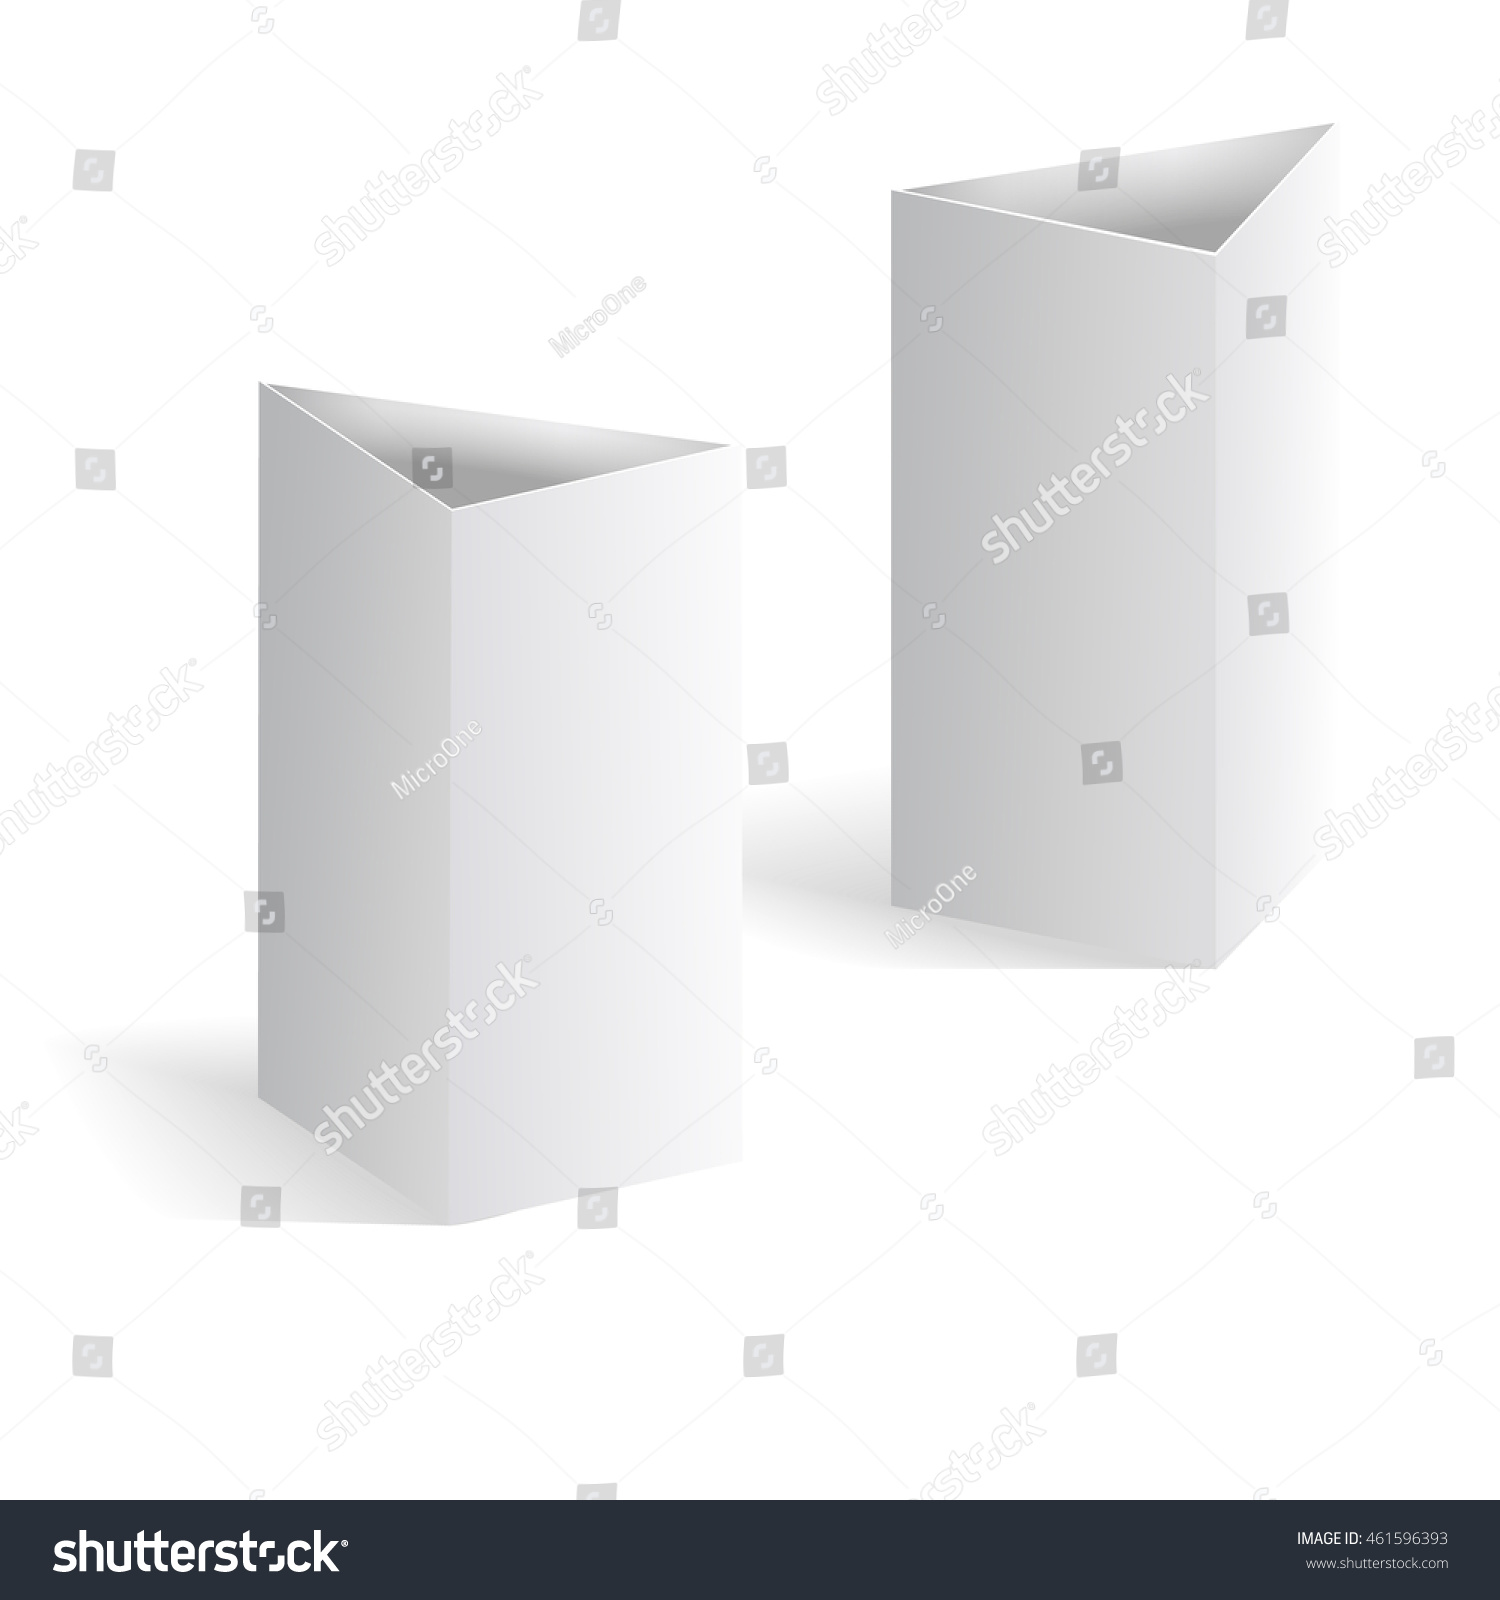 White Blank Table Tent Vector, Vertical Triangle Cards Isolated On White  Background. Template Of